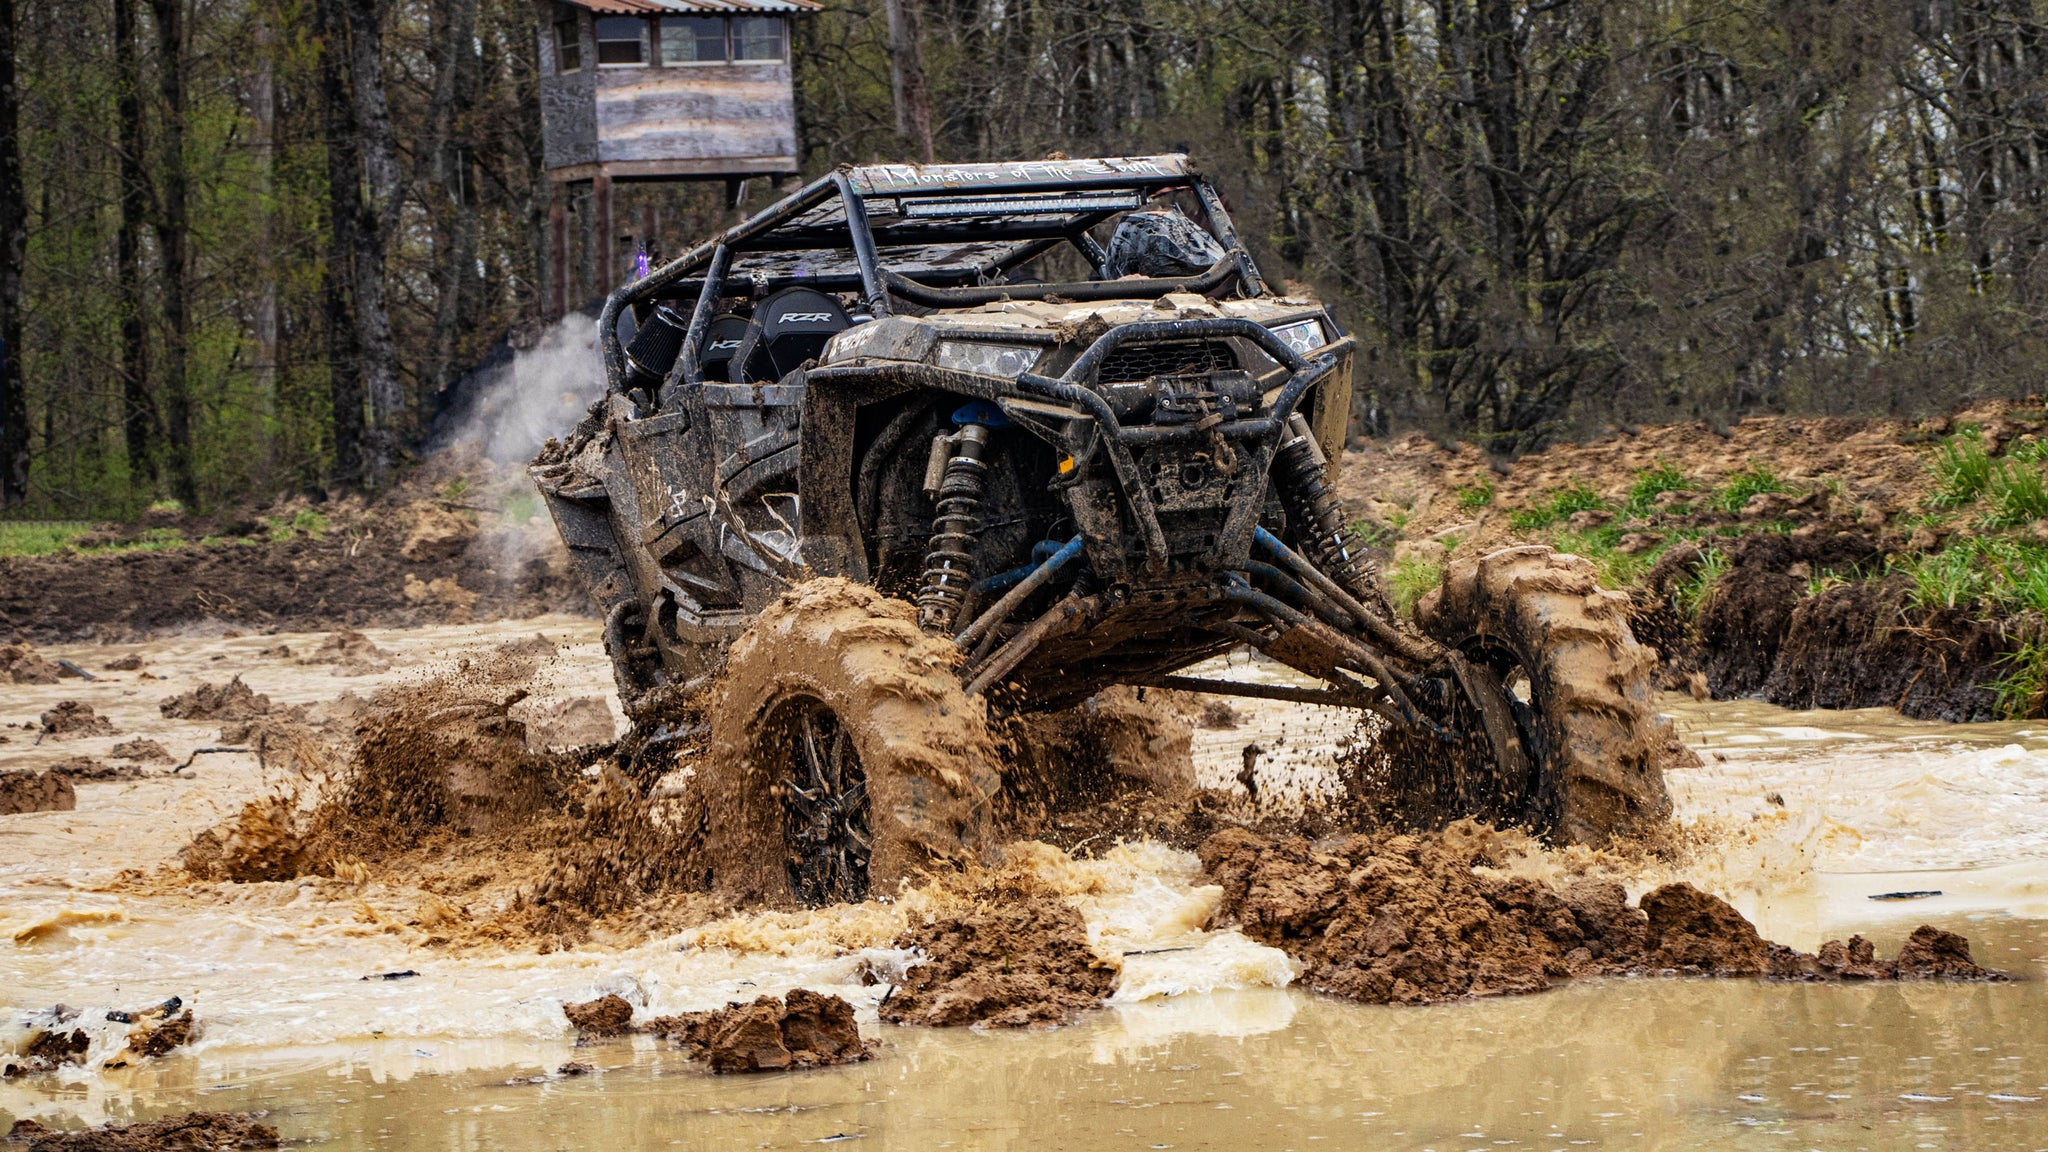 High Lifter Mud Nationals - March 27-31, 2019: Blevins, AR